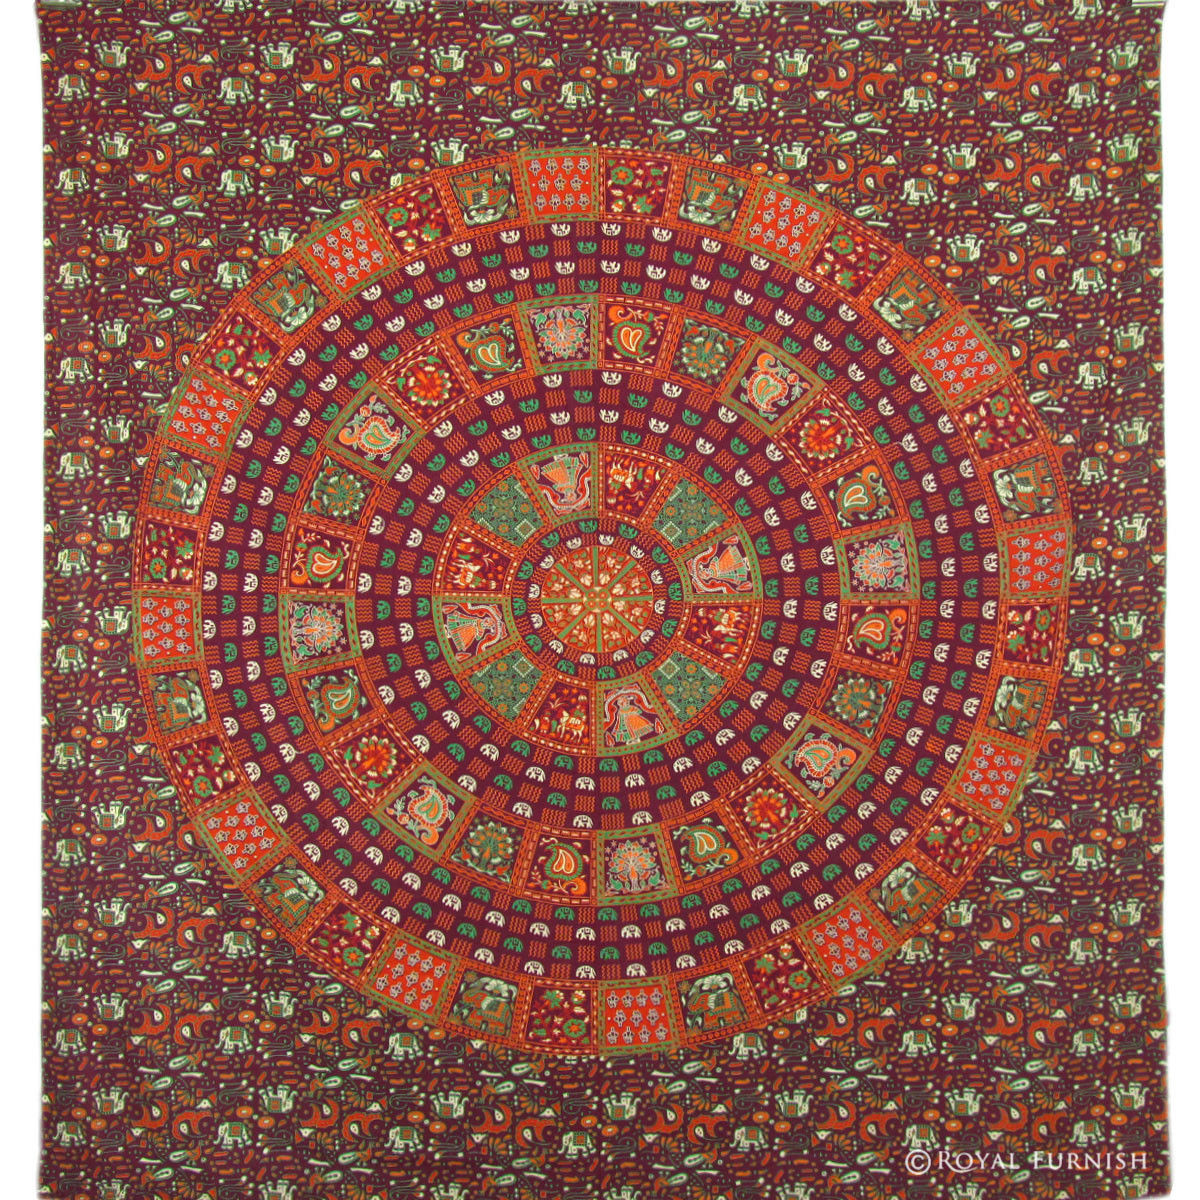 New Home Interior Design Indian Mandala Dorm Room Decor Hippie Tapestry Wall